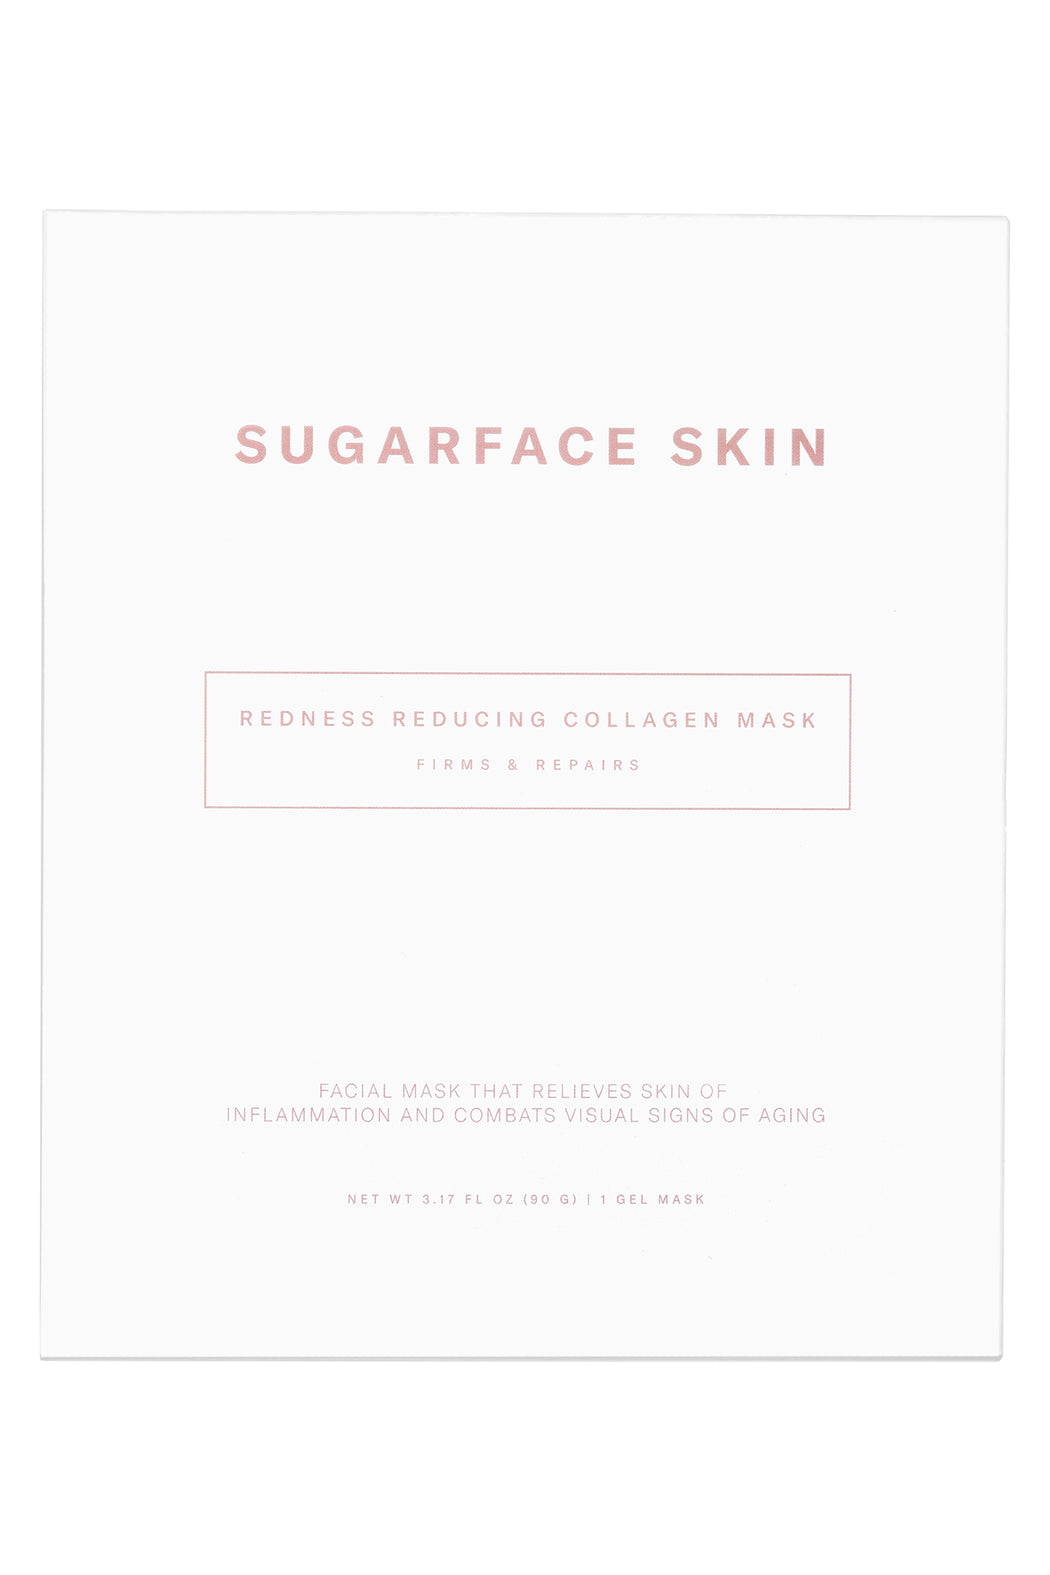 Sugarface-Skin-Redness-Reducing-Collagen-Mask